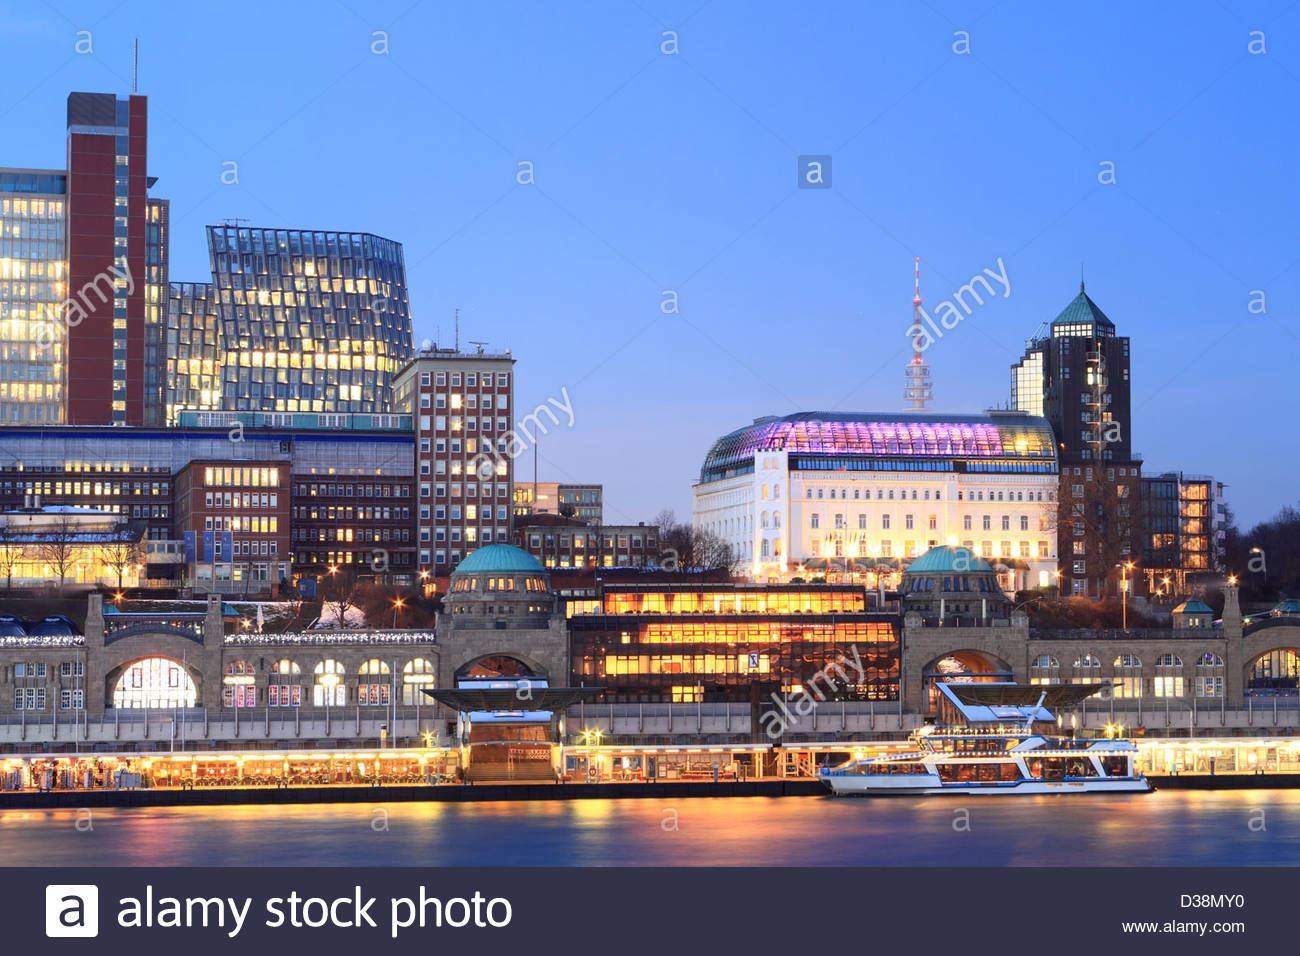 Urban waterfront lit up at night - Stock Image